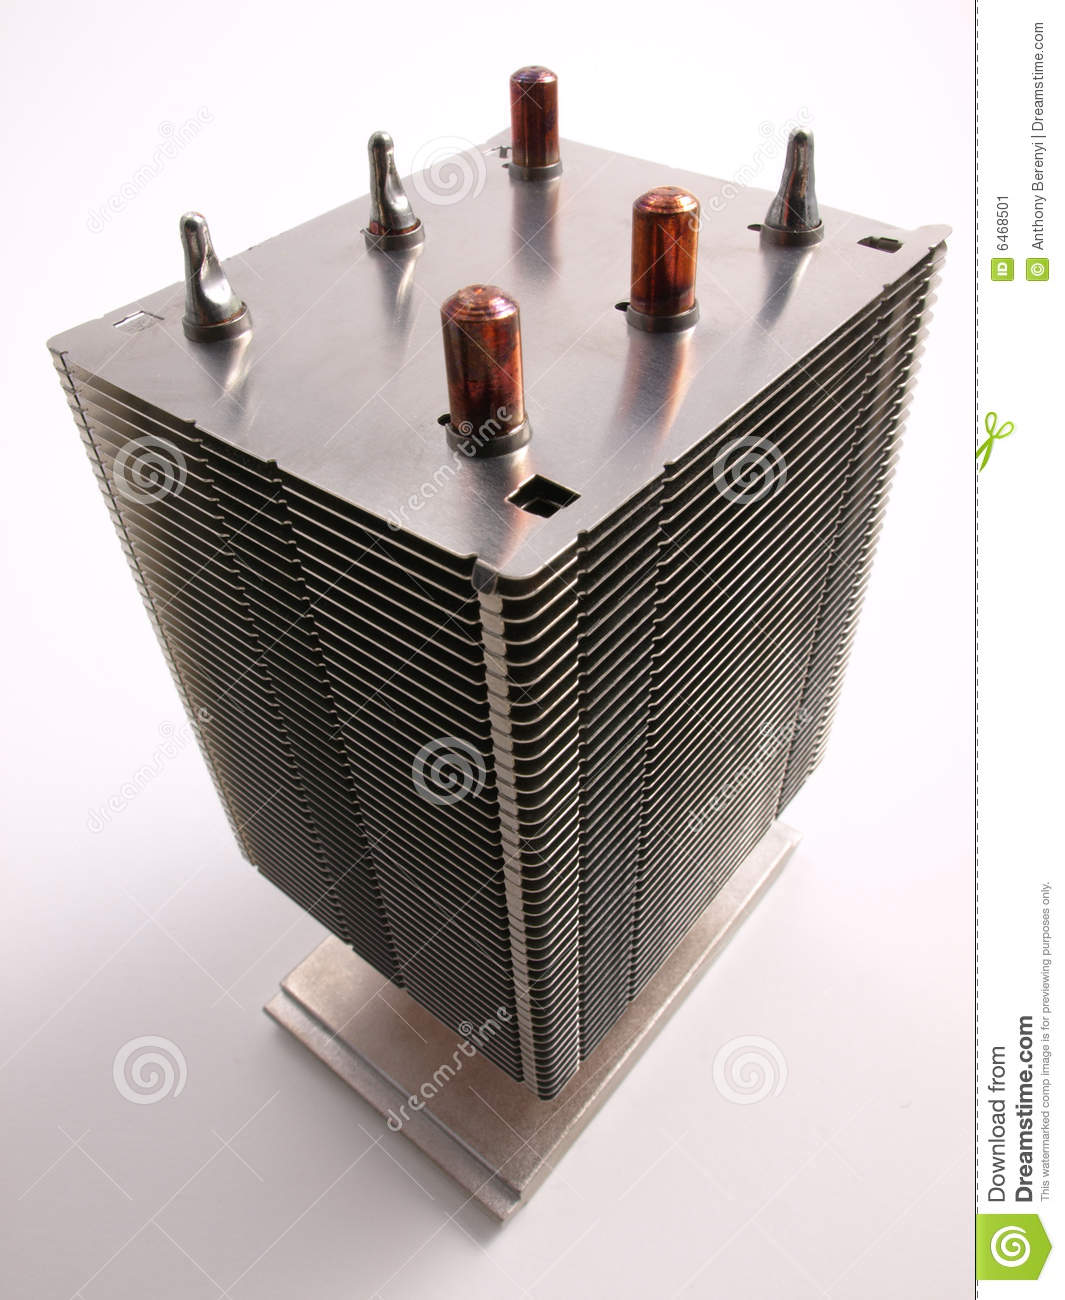 Computer Heat Sink : Cpu heat sink top view stock image